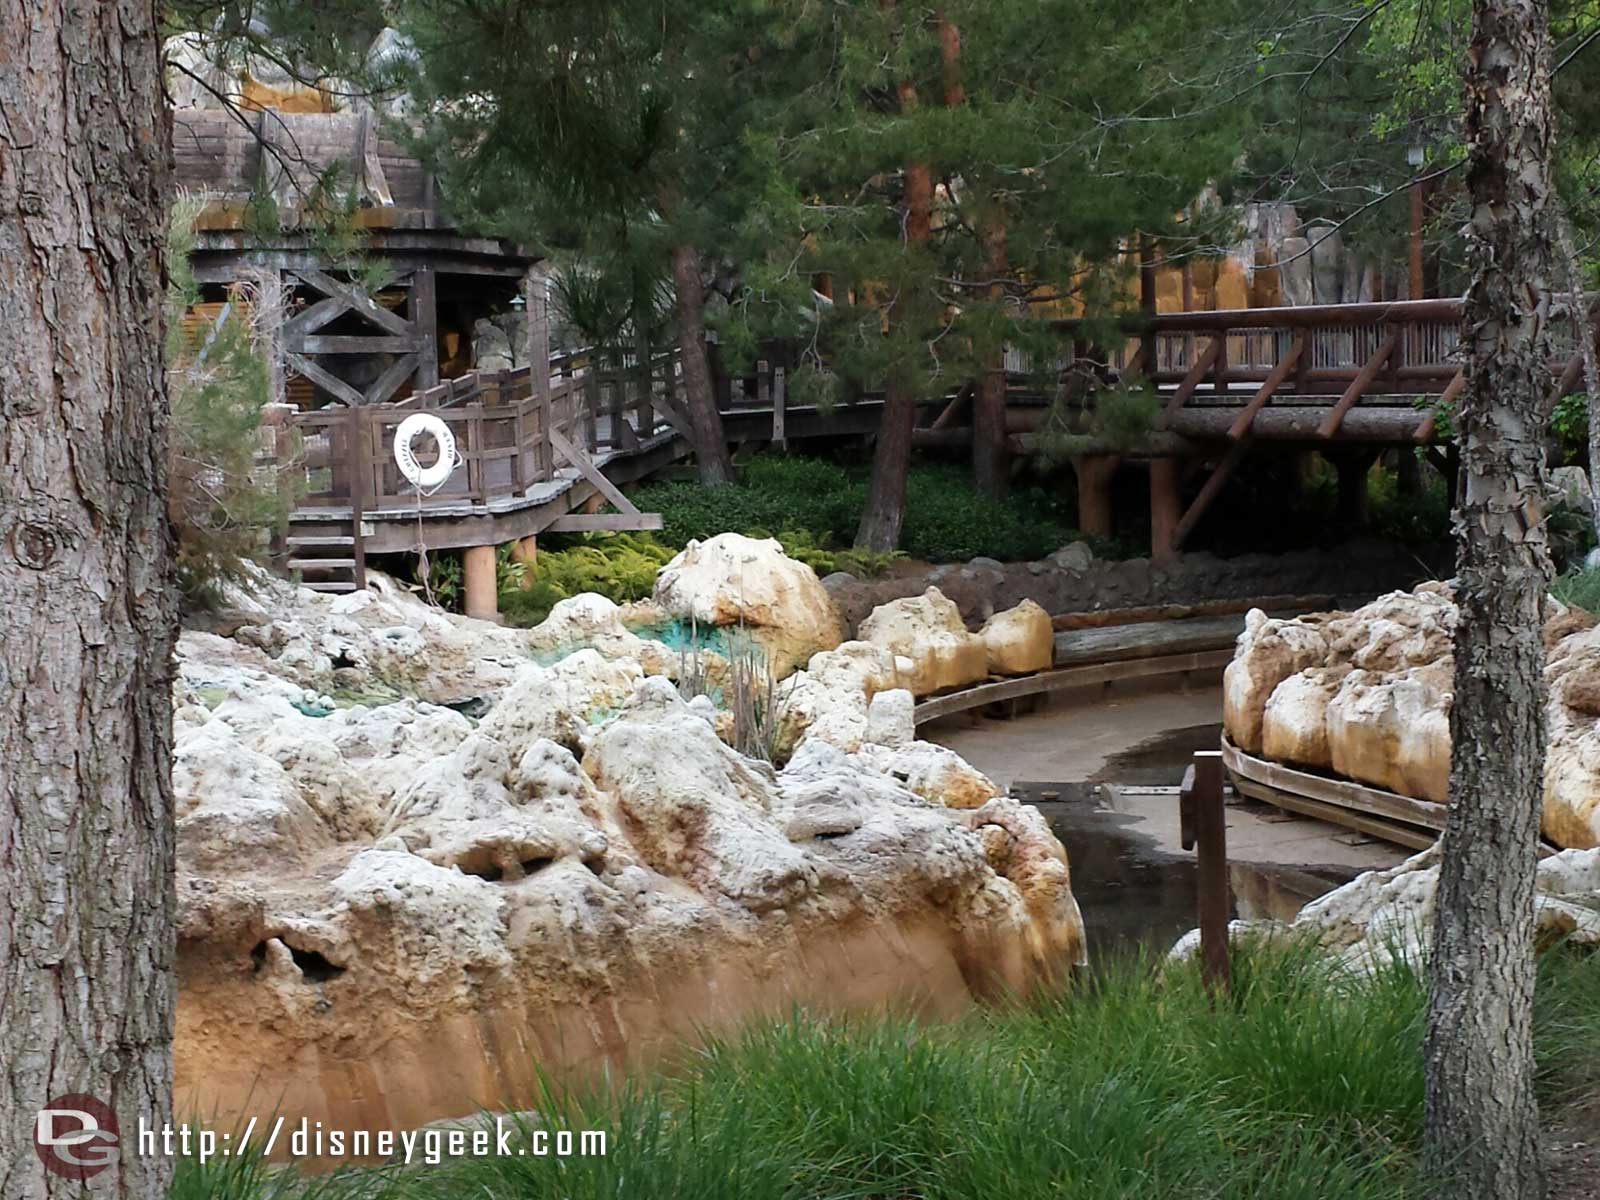 Grizzly River Run is closed for several weeks of work